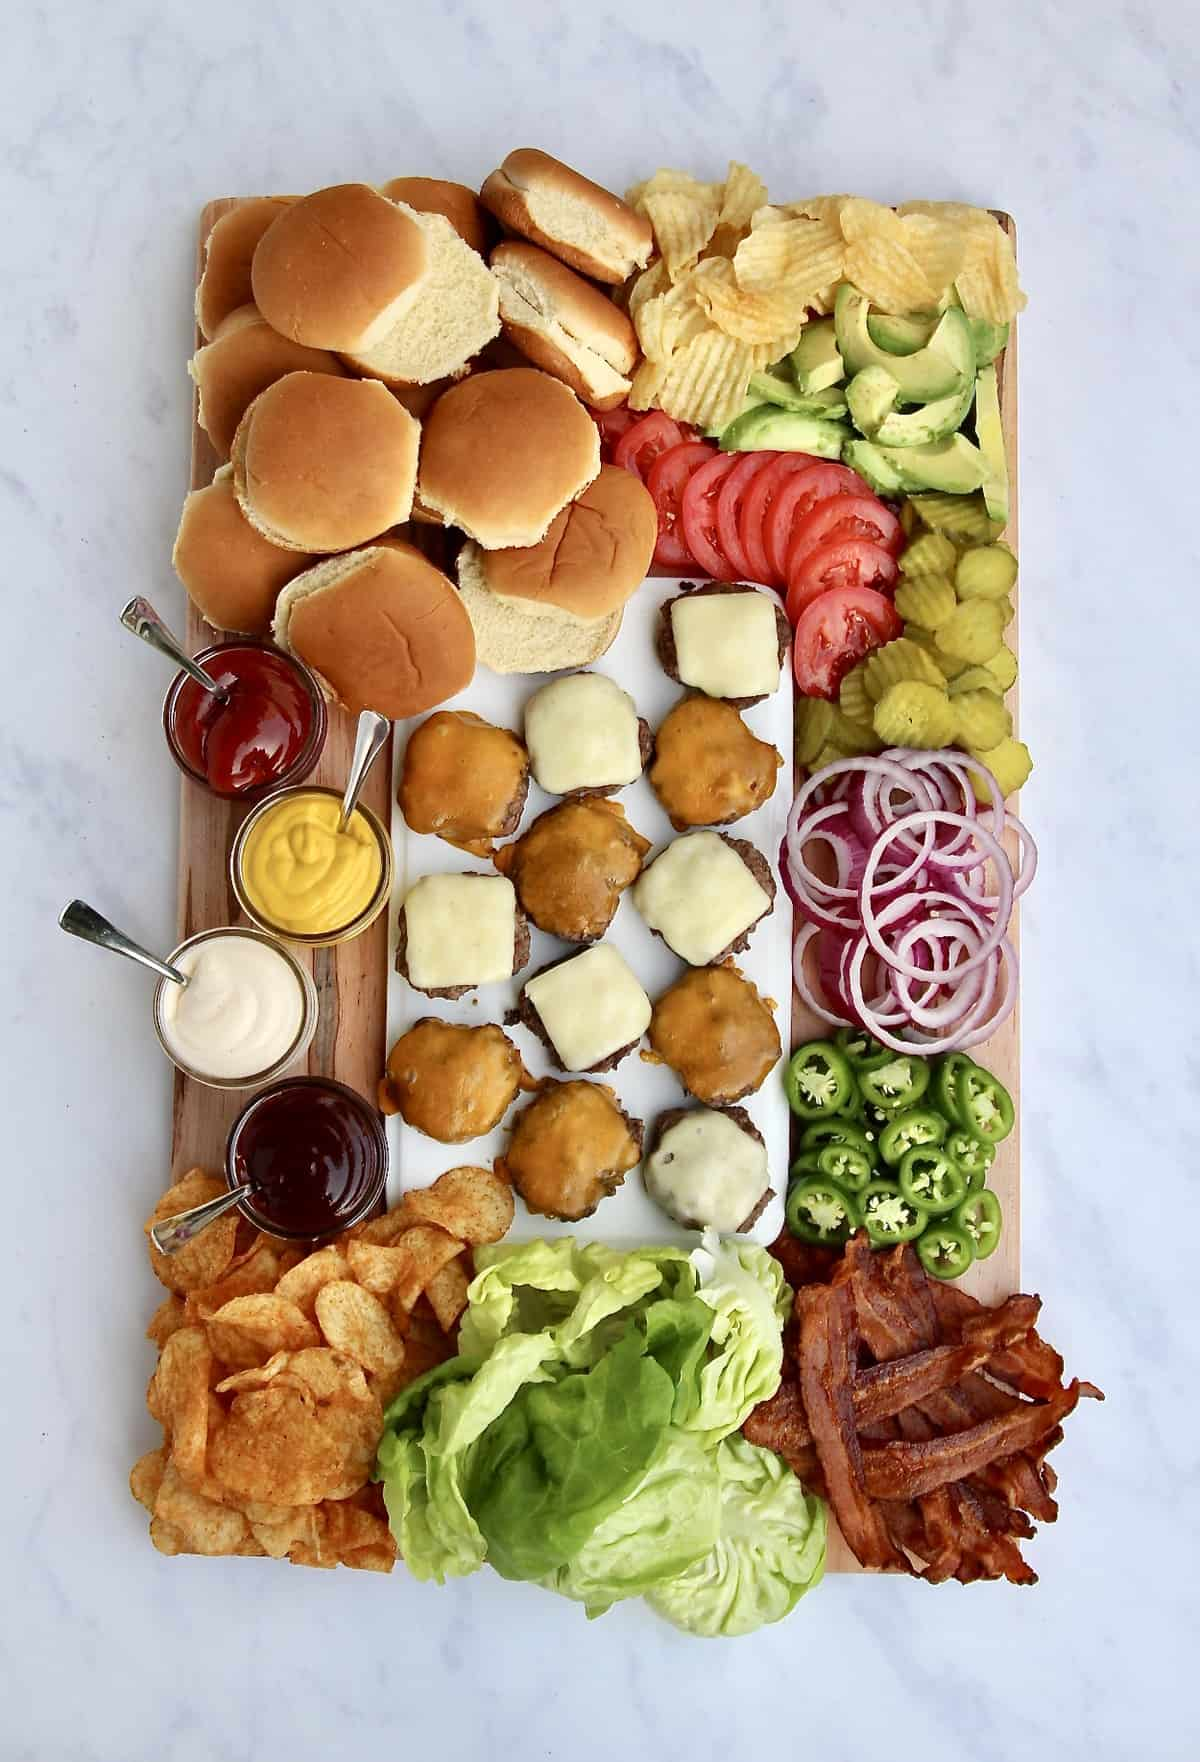 Build-Your-Own Burger Board